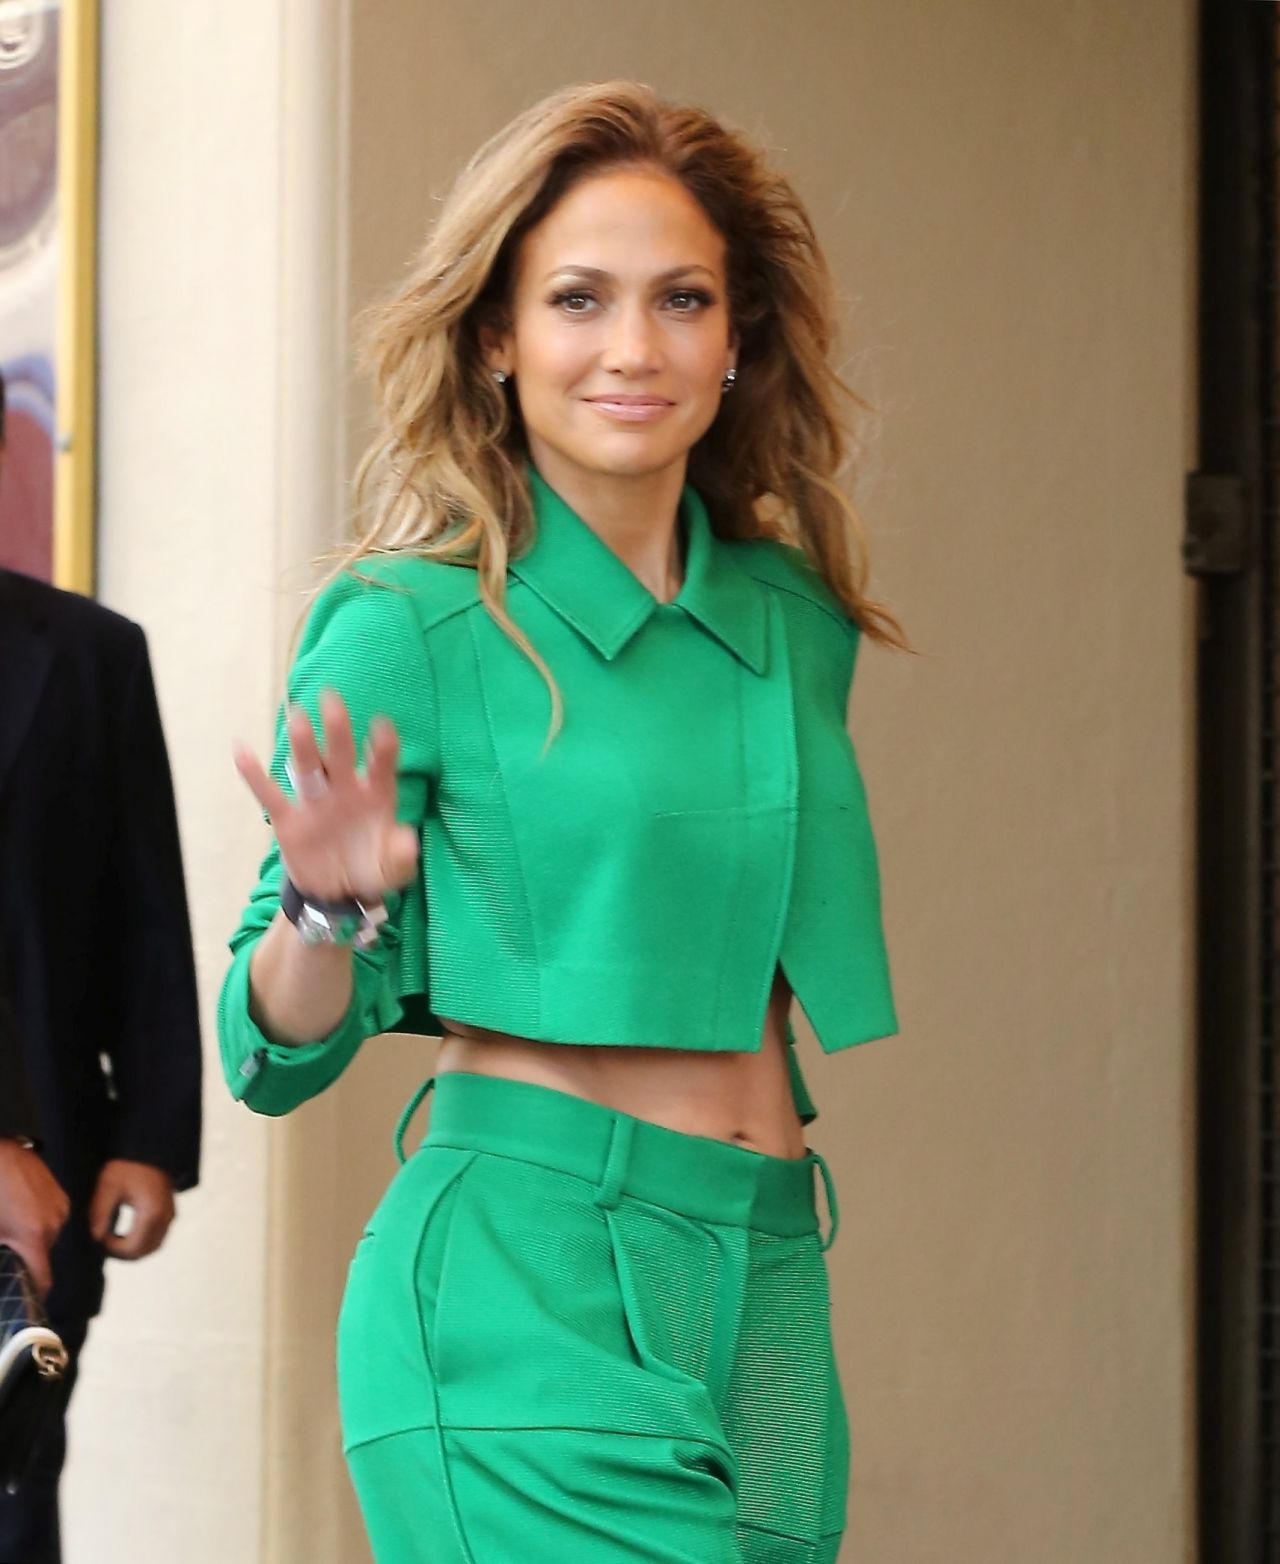 jennifer lopez style out filming in hollywood october 2014